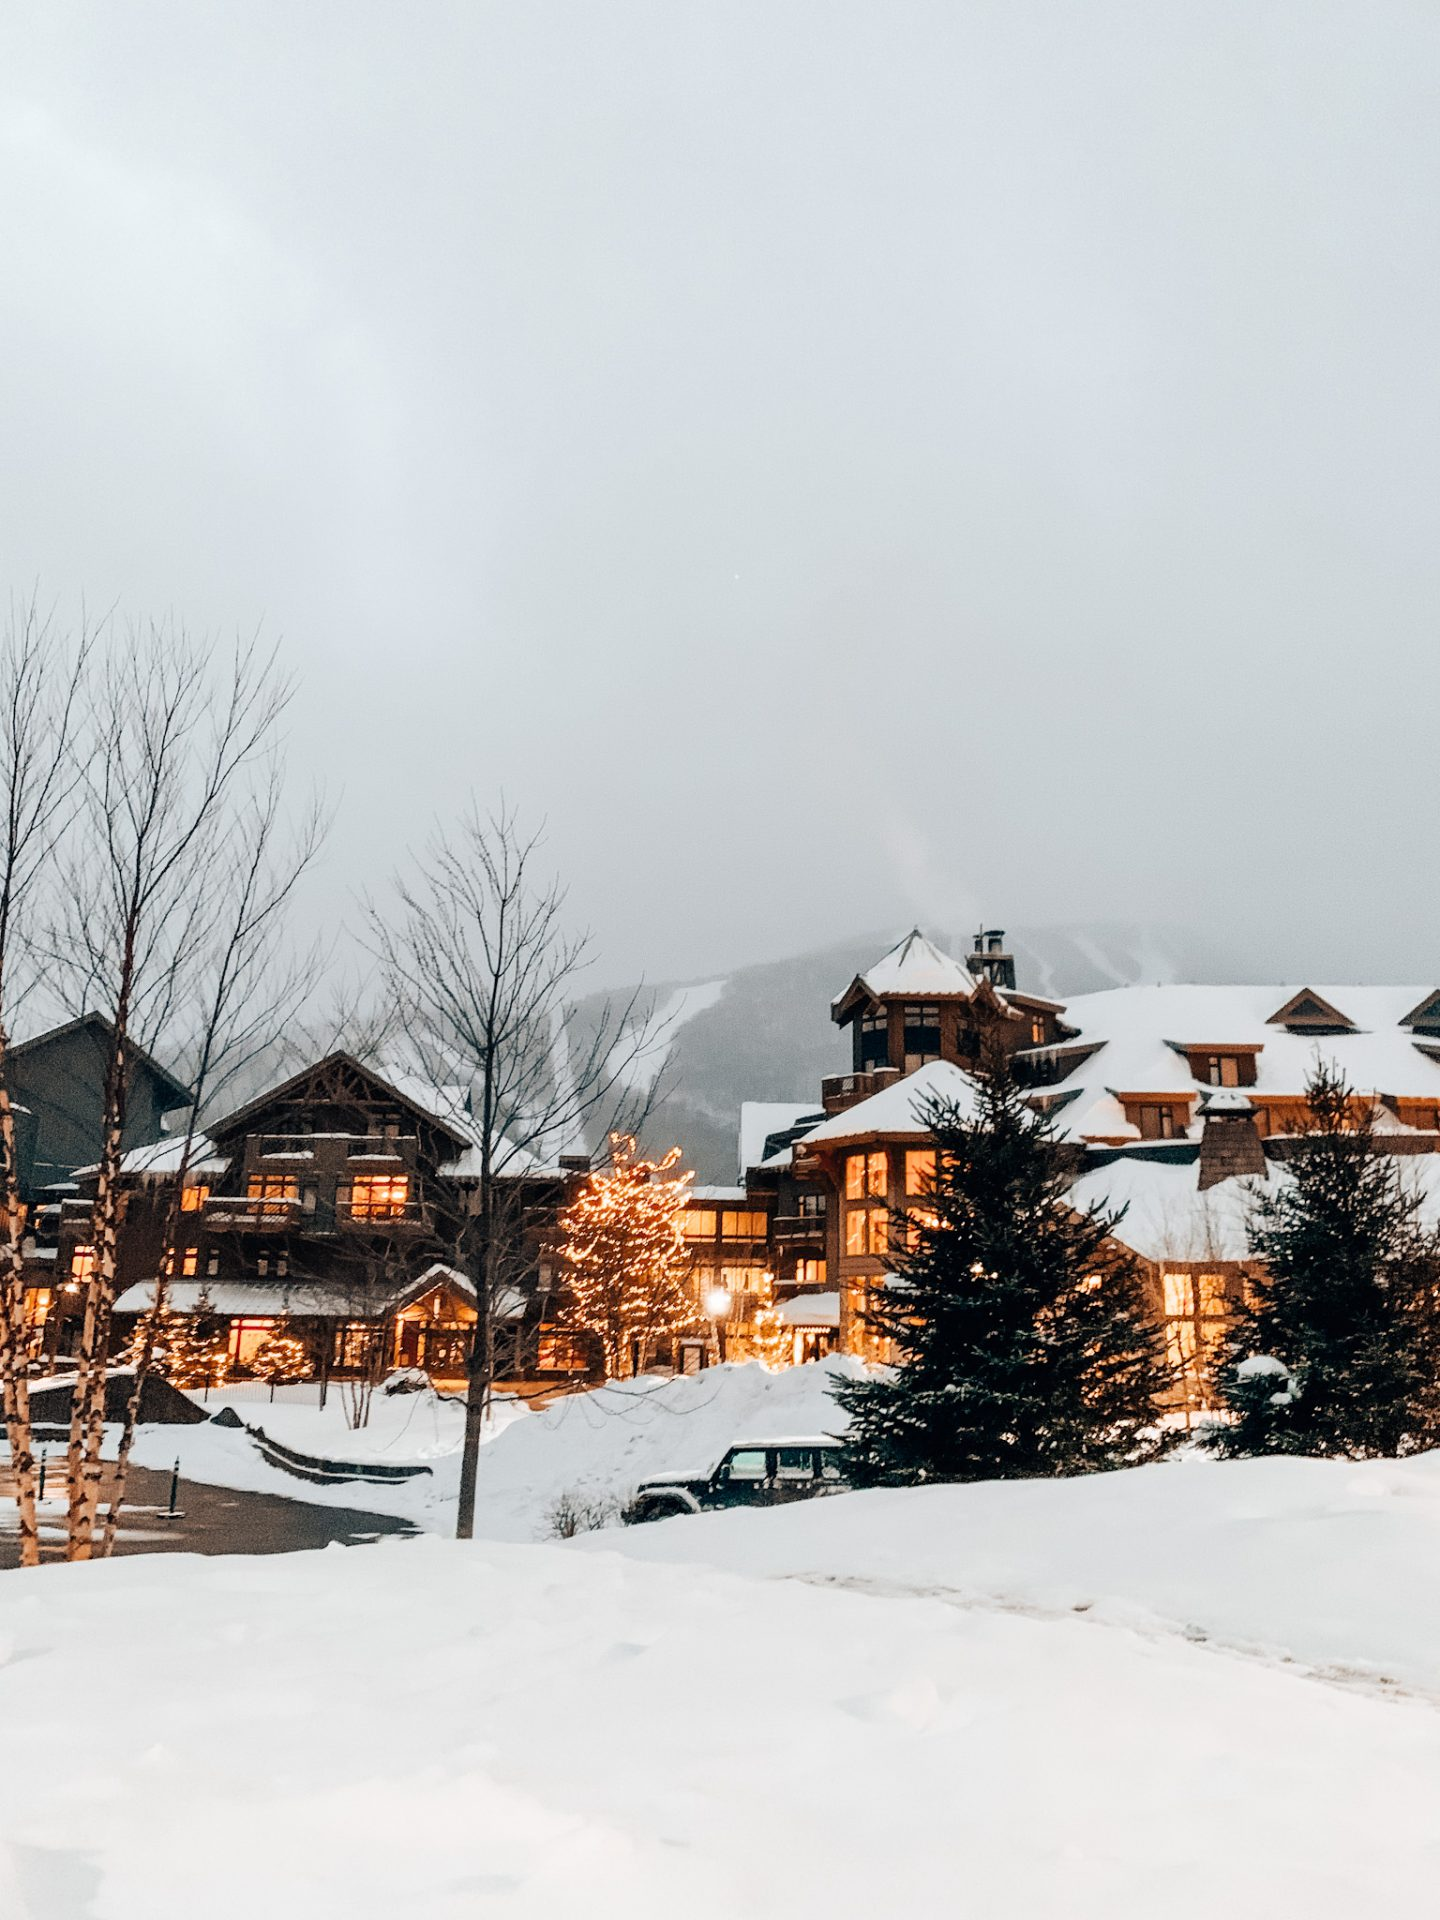 Stowe Mountain Resort with runs in background